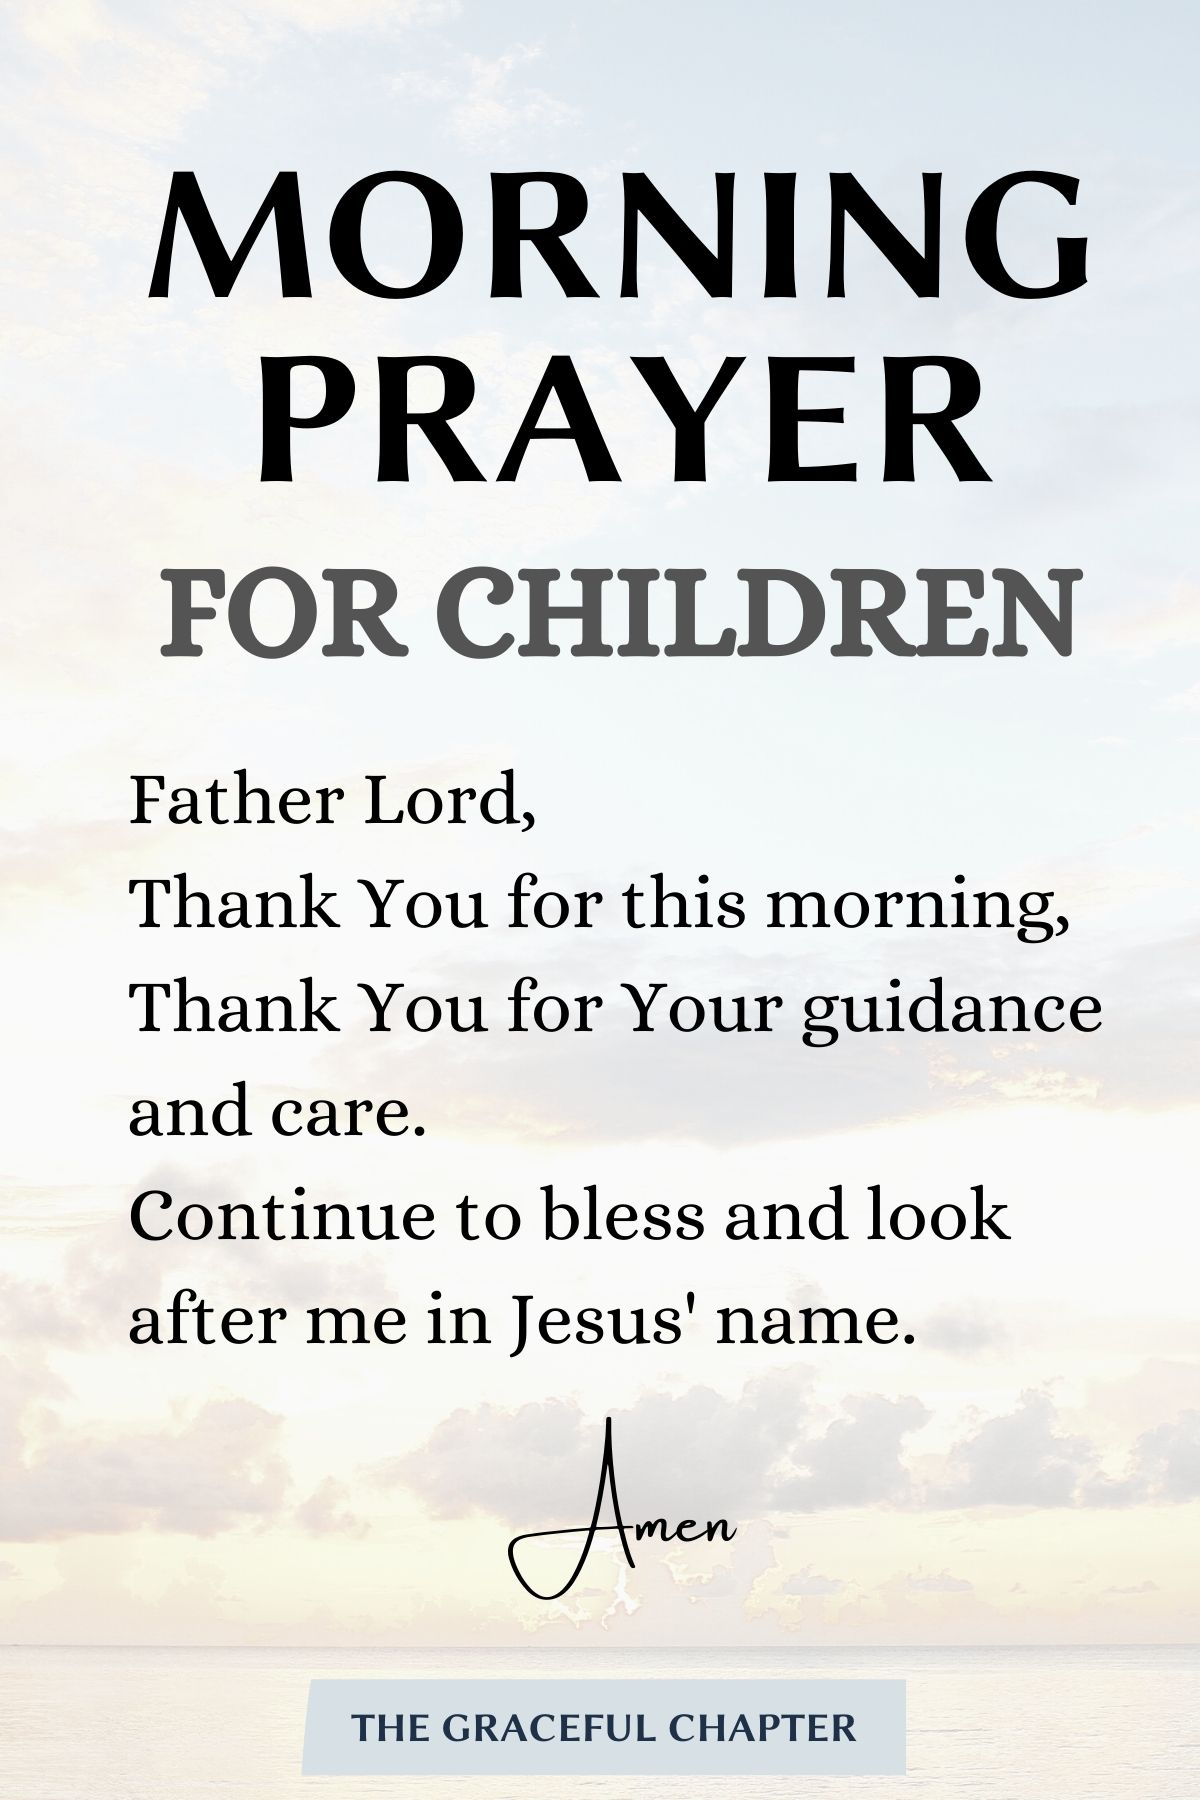 a simple morning prayer for children